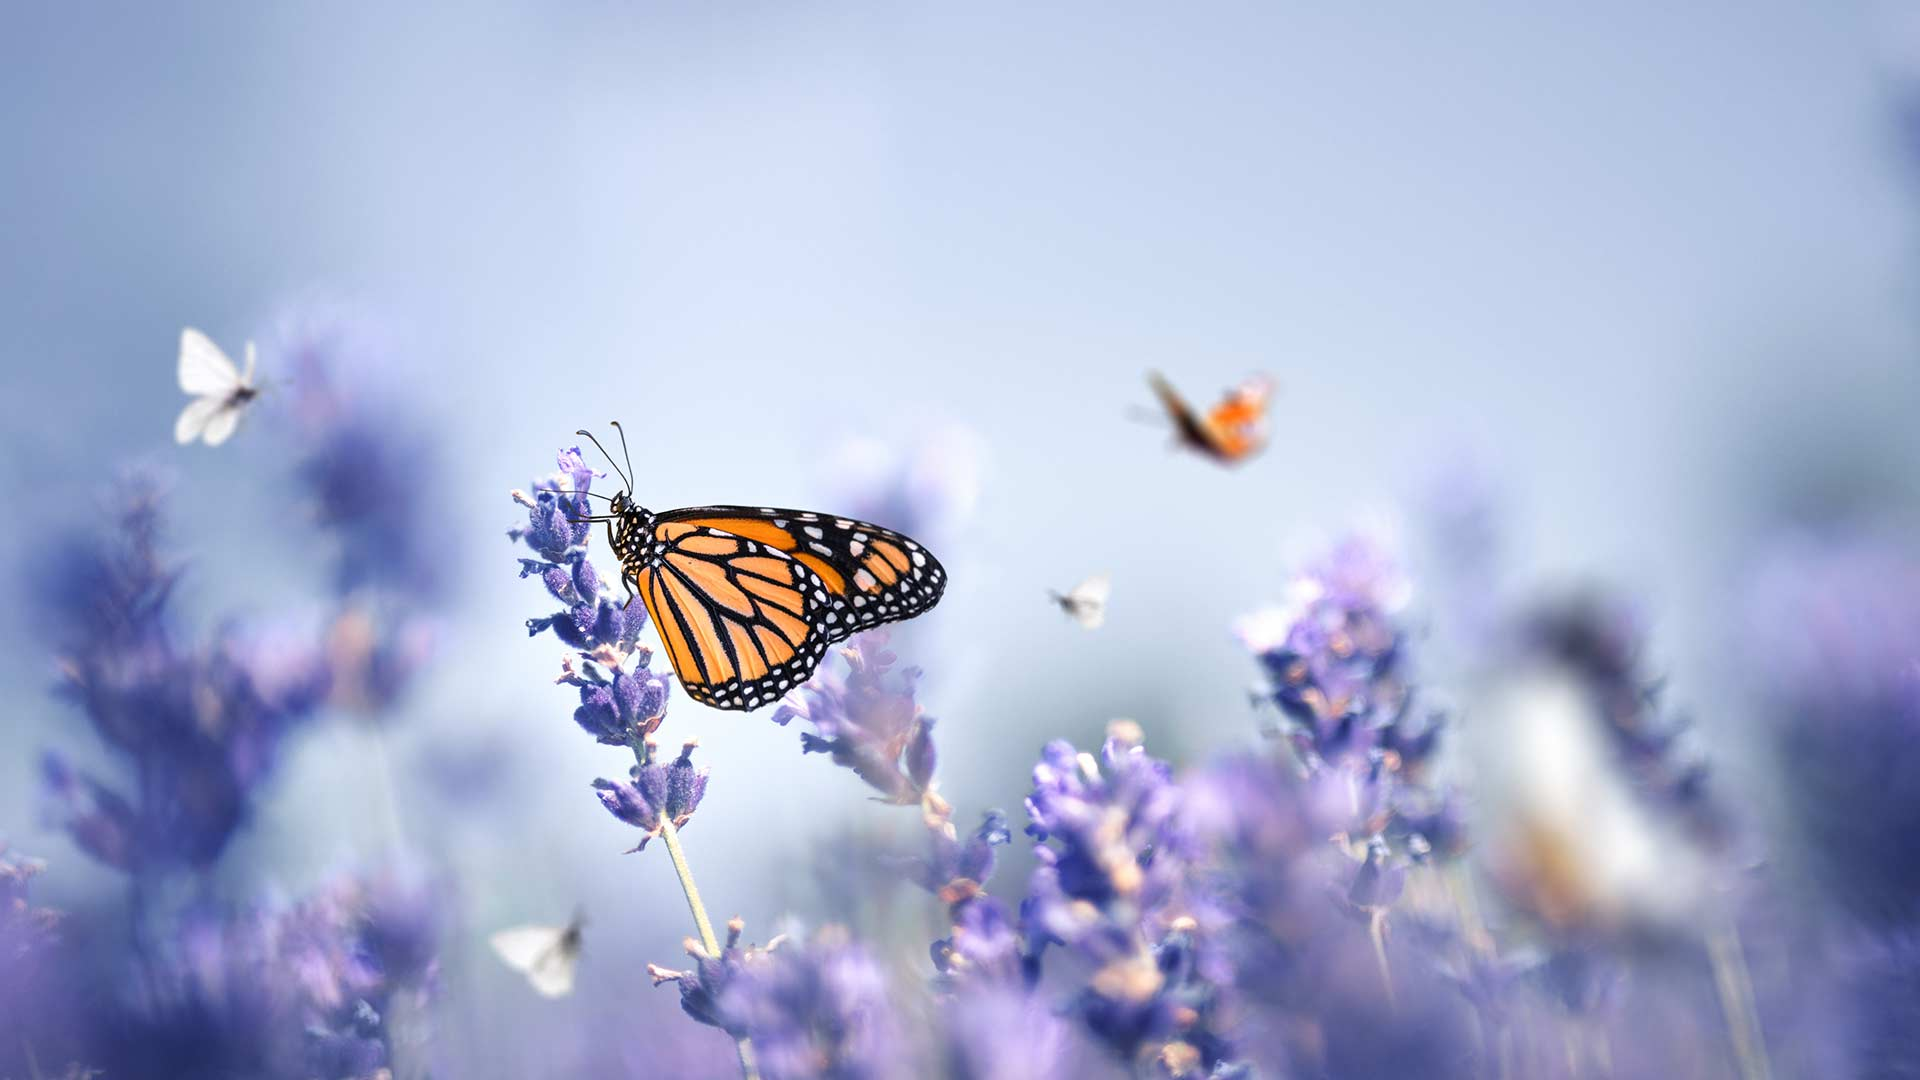 butterflies on flowers in the spring